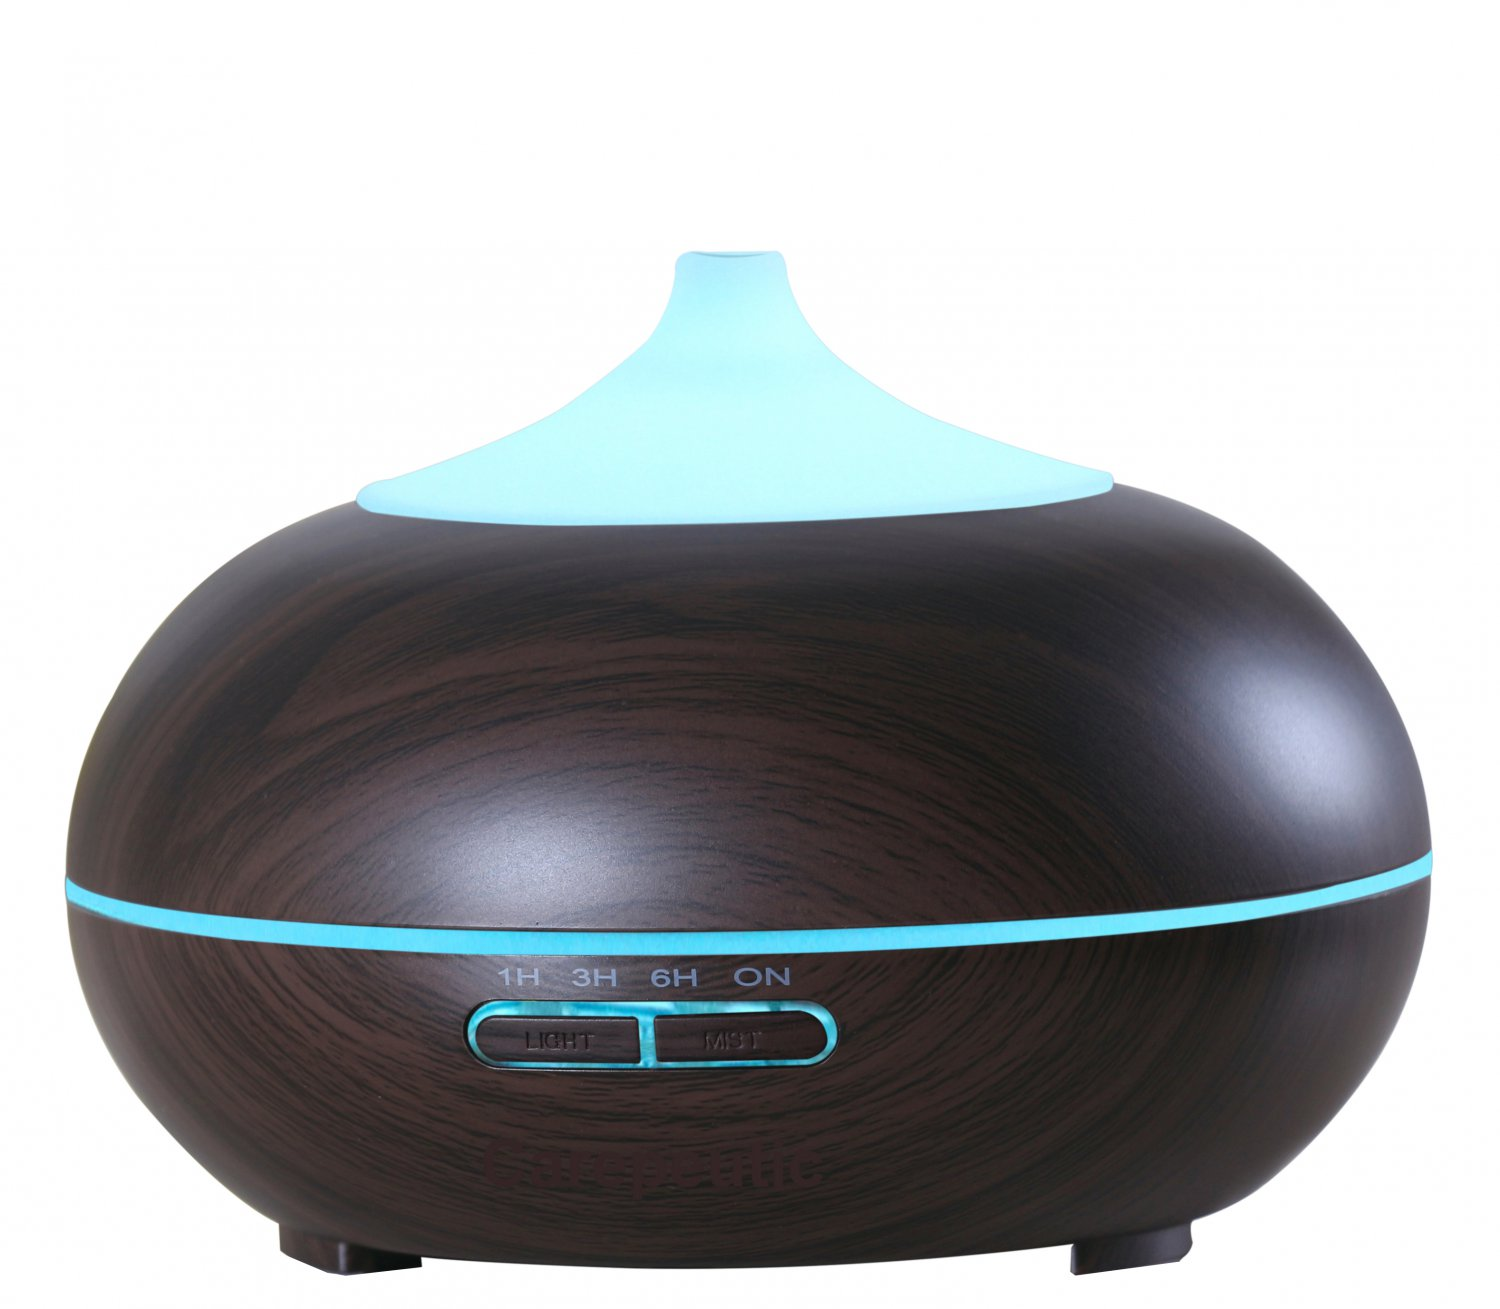 Carepeutic Aroma Therapy Diffuser (Dark Wood Grained)